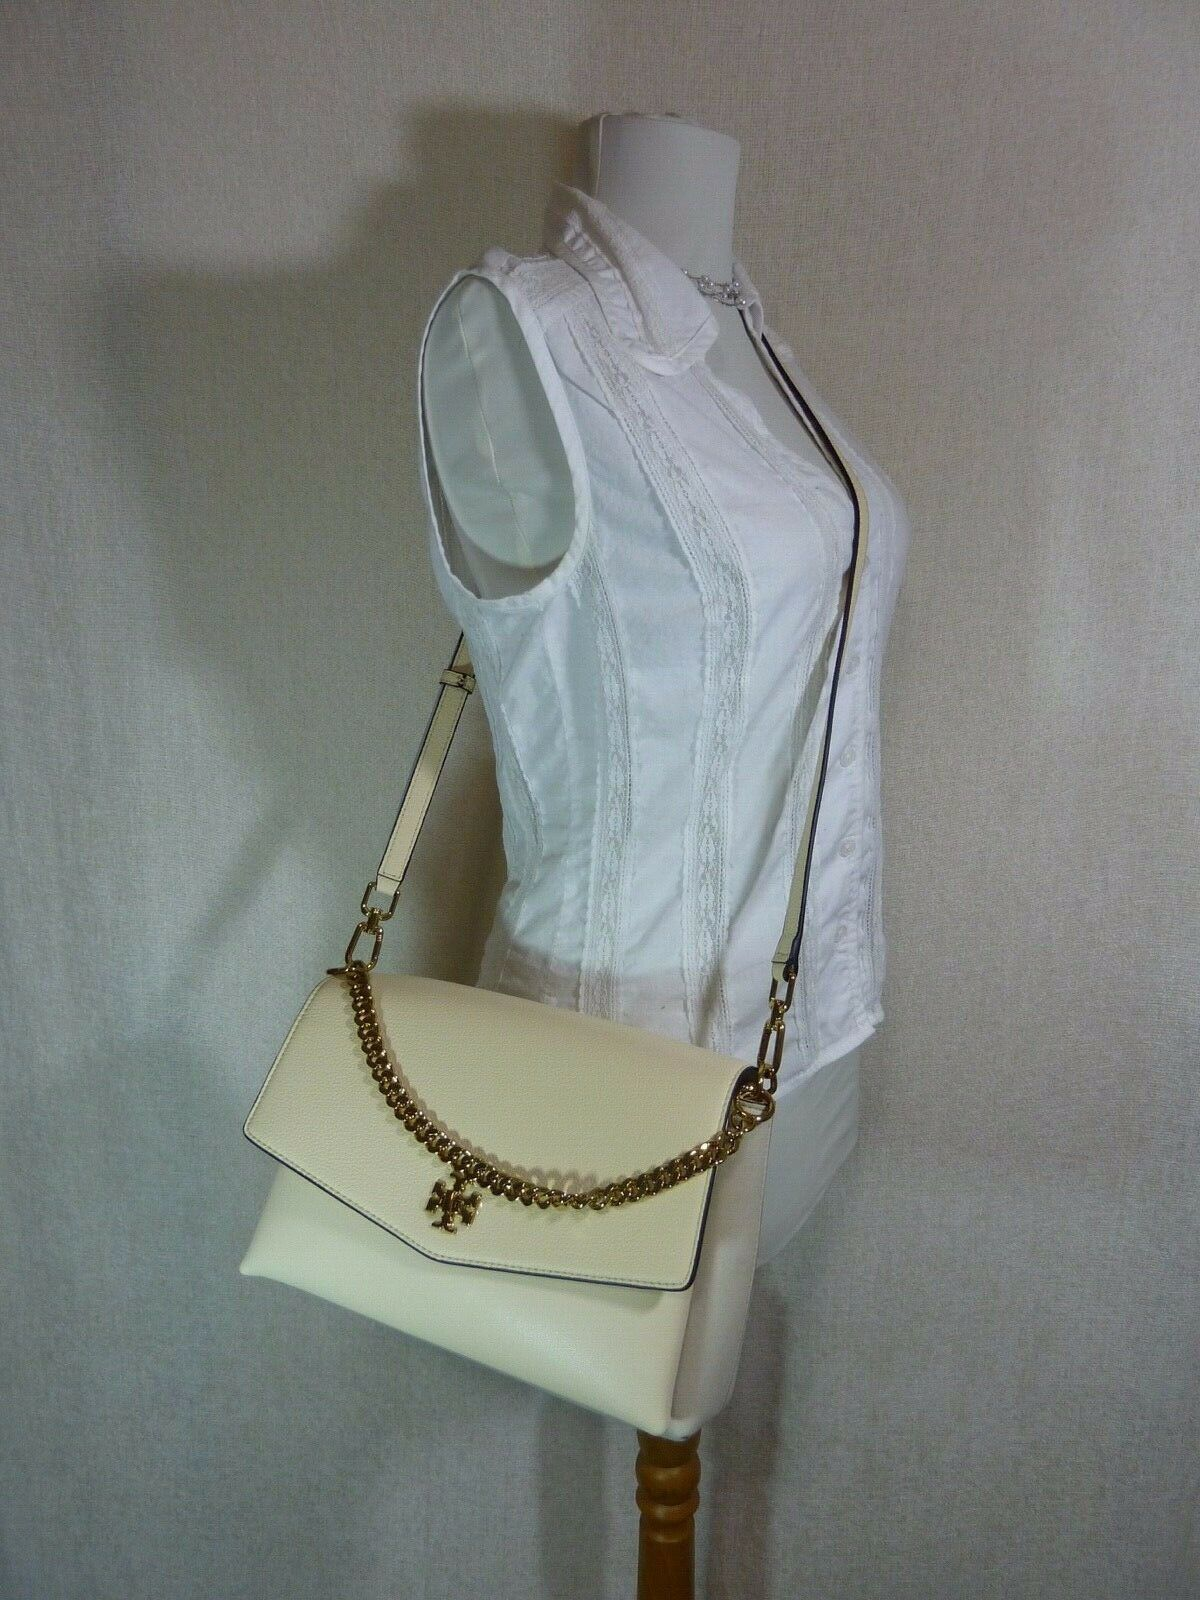 NWT Tory Burch New Cream KIRA Mixed-material Double-strap Shoulder Bag image 10